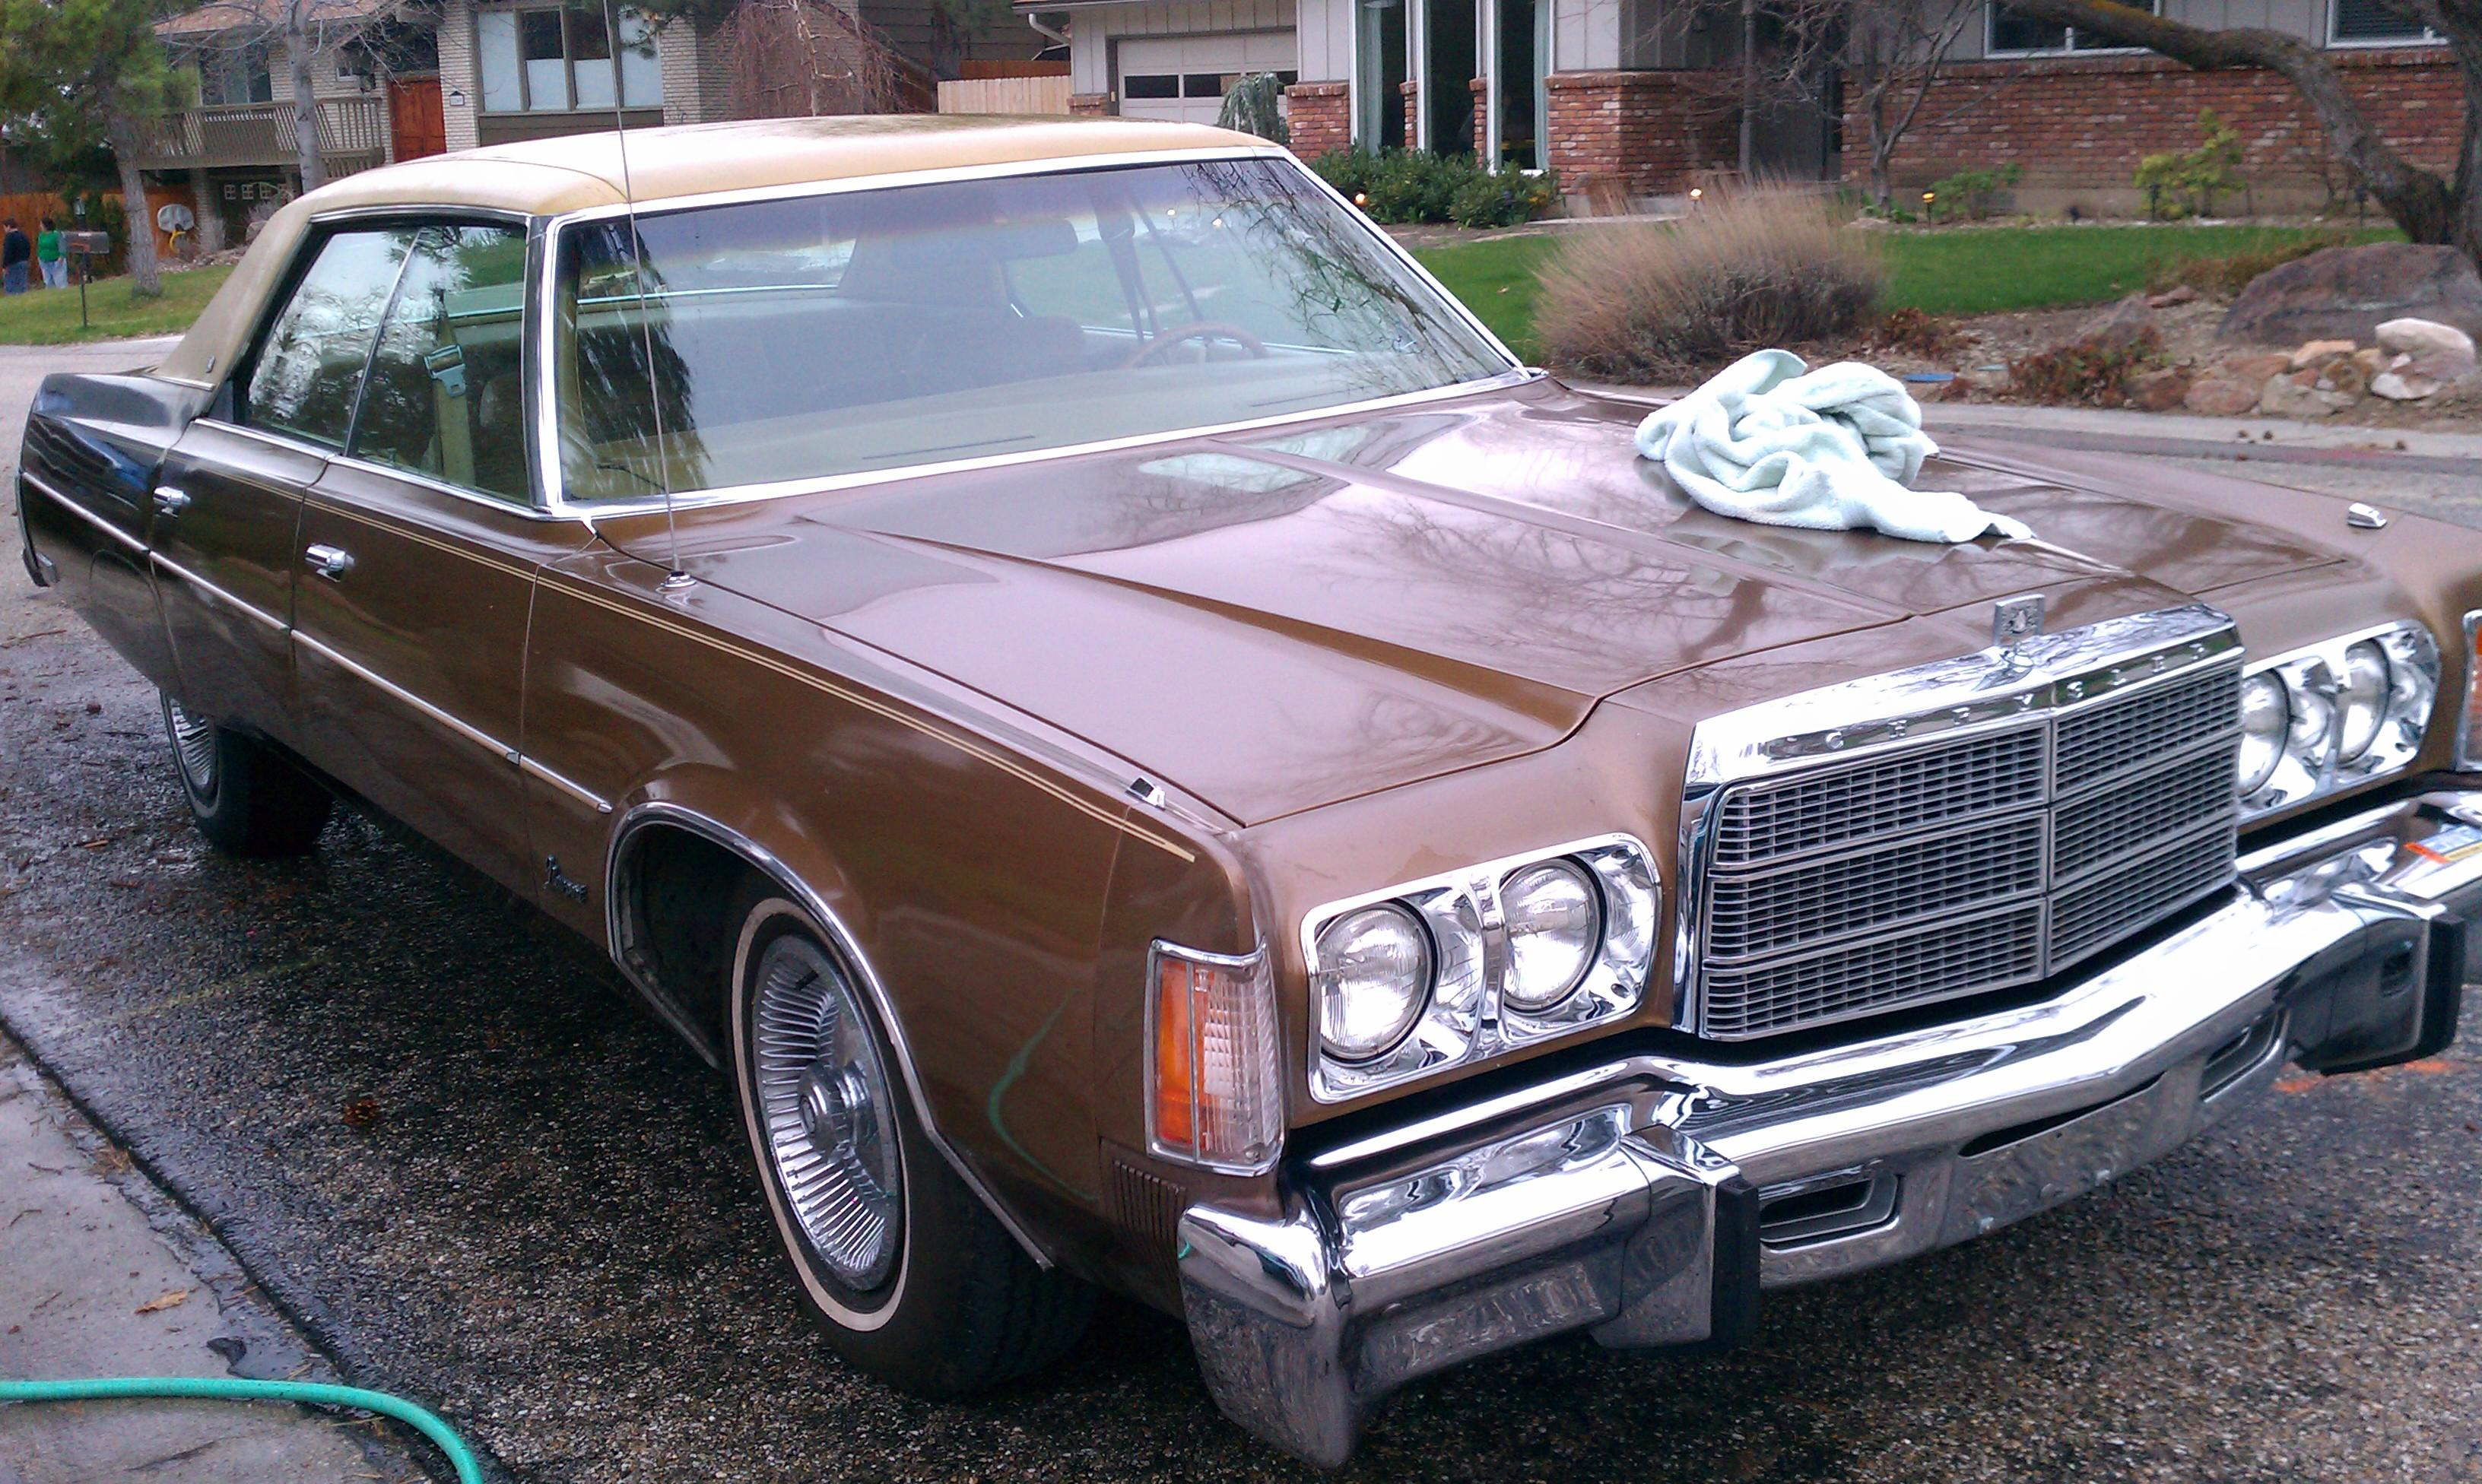 1978 Chrysler Newport #4